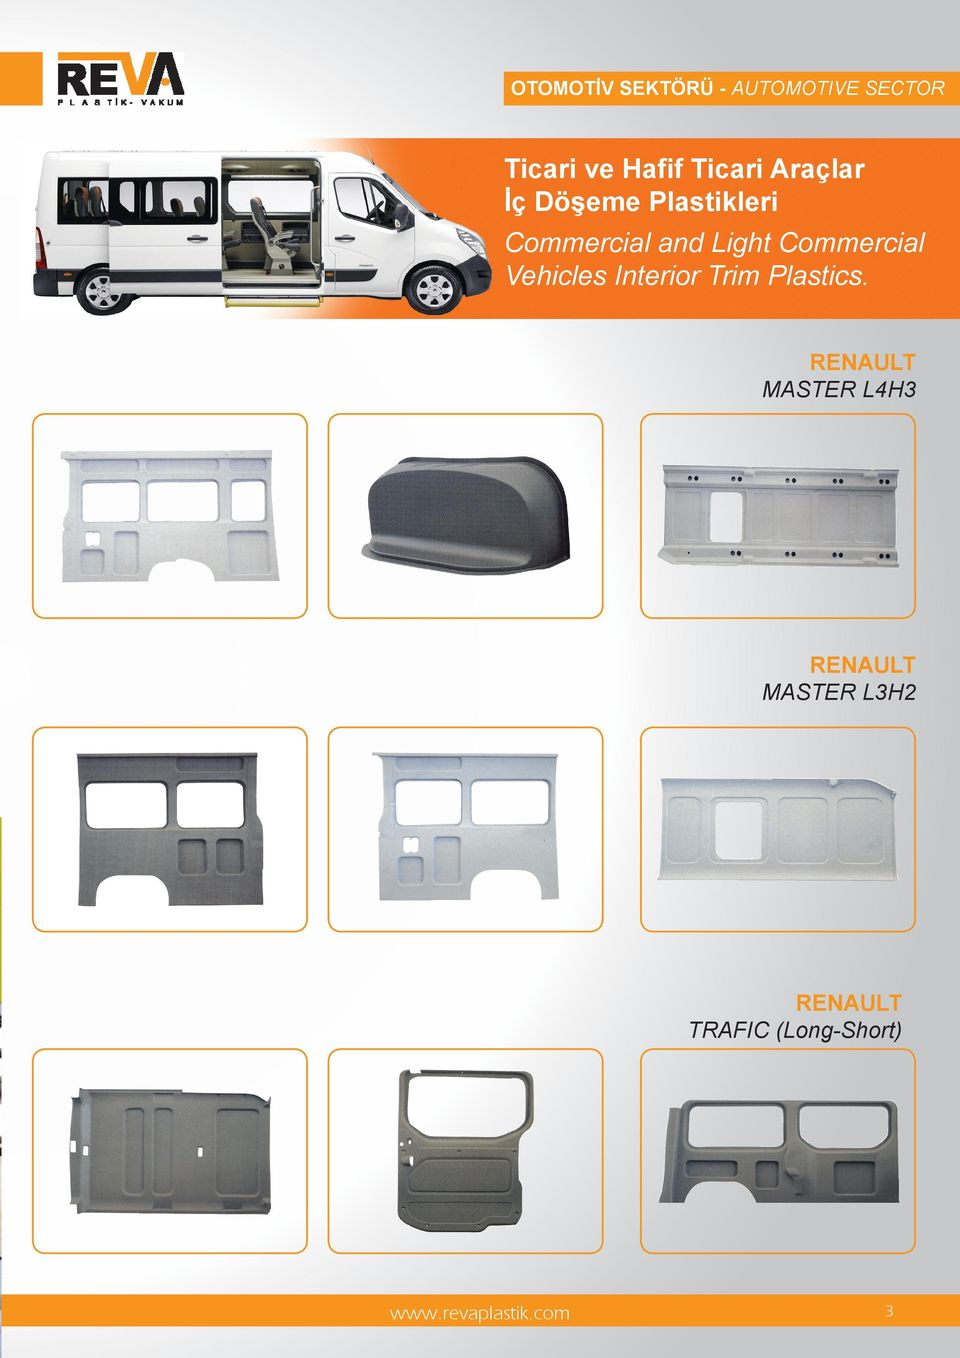 Light Commercial Vehicles Interior Trim Plastics.